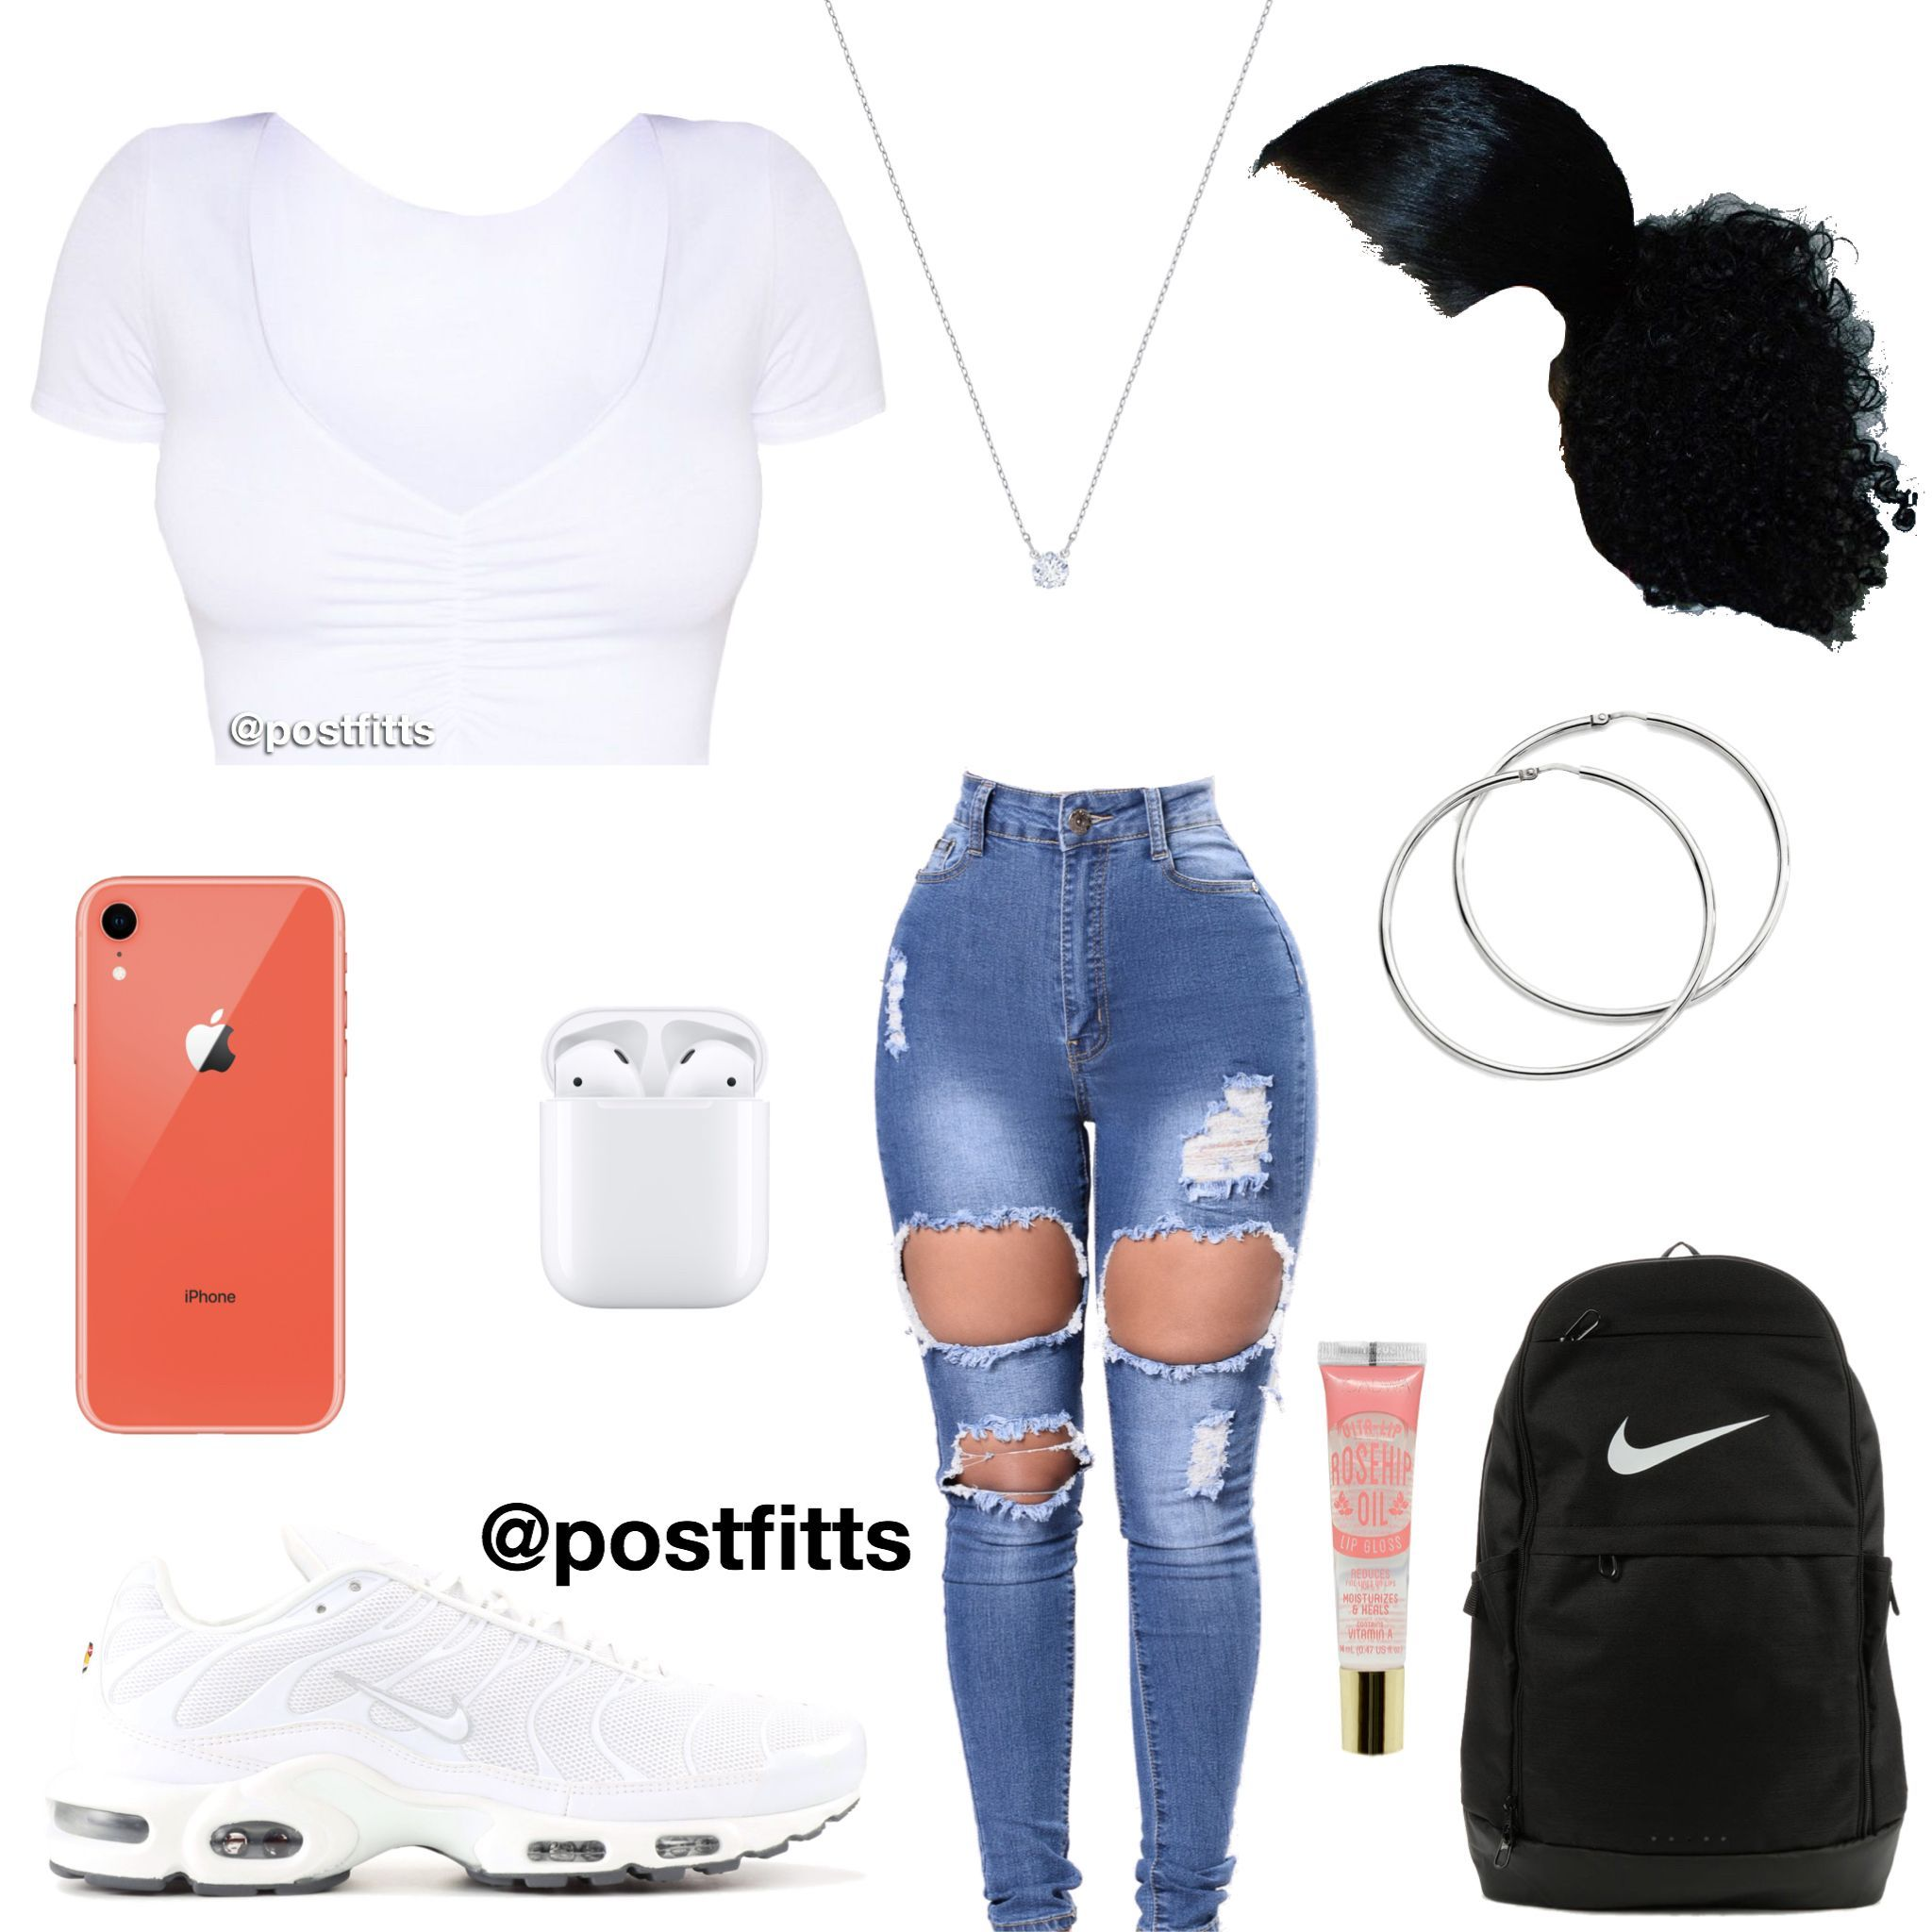 outfits | Instagram: @postfitts #baddieoutfitsforschool outfits | Instagram: @po... 1